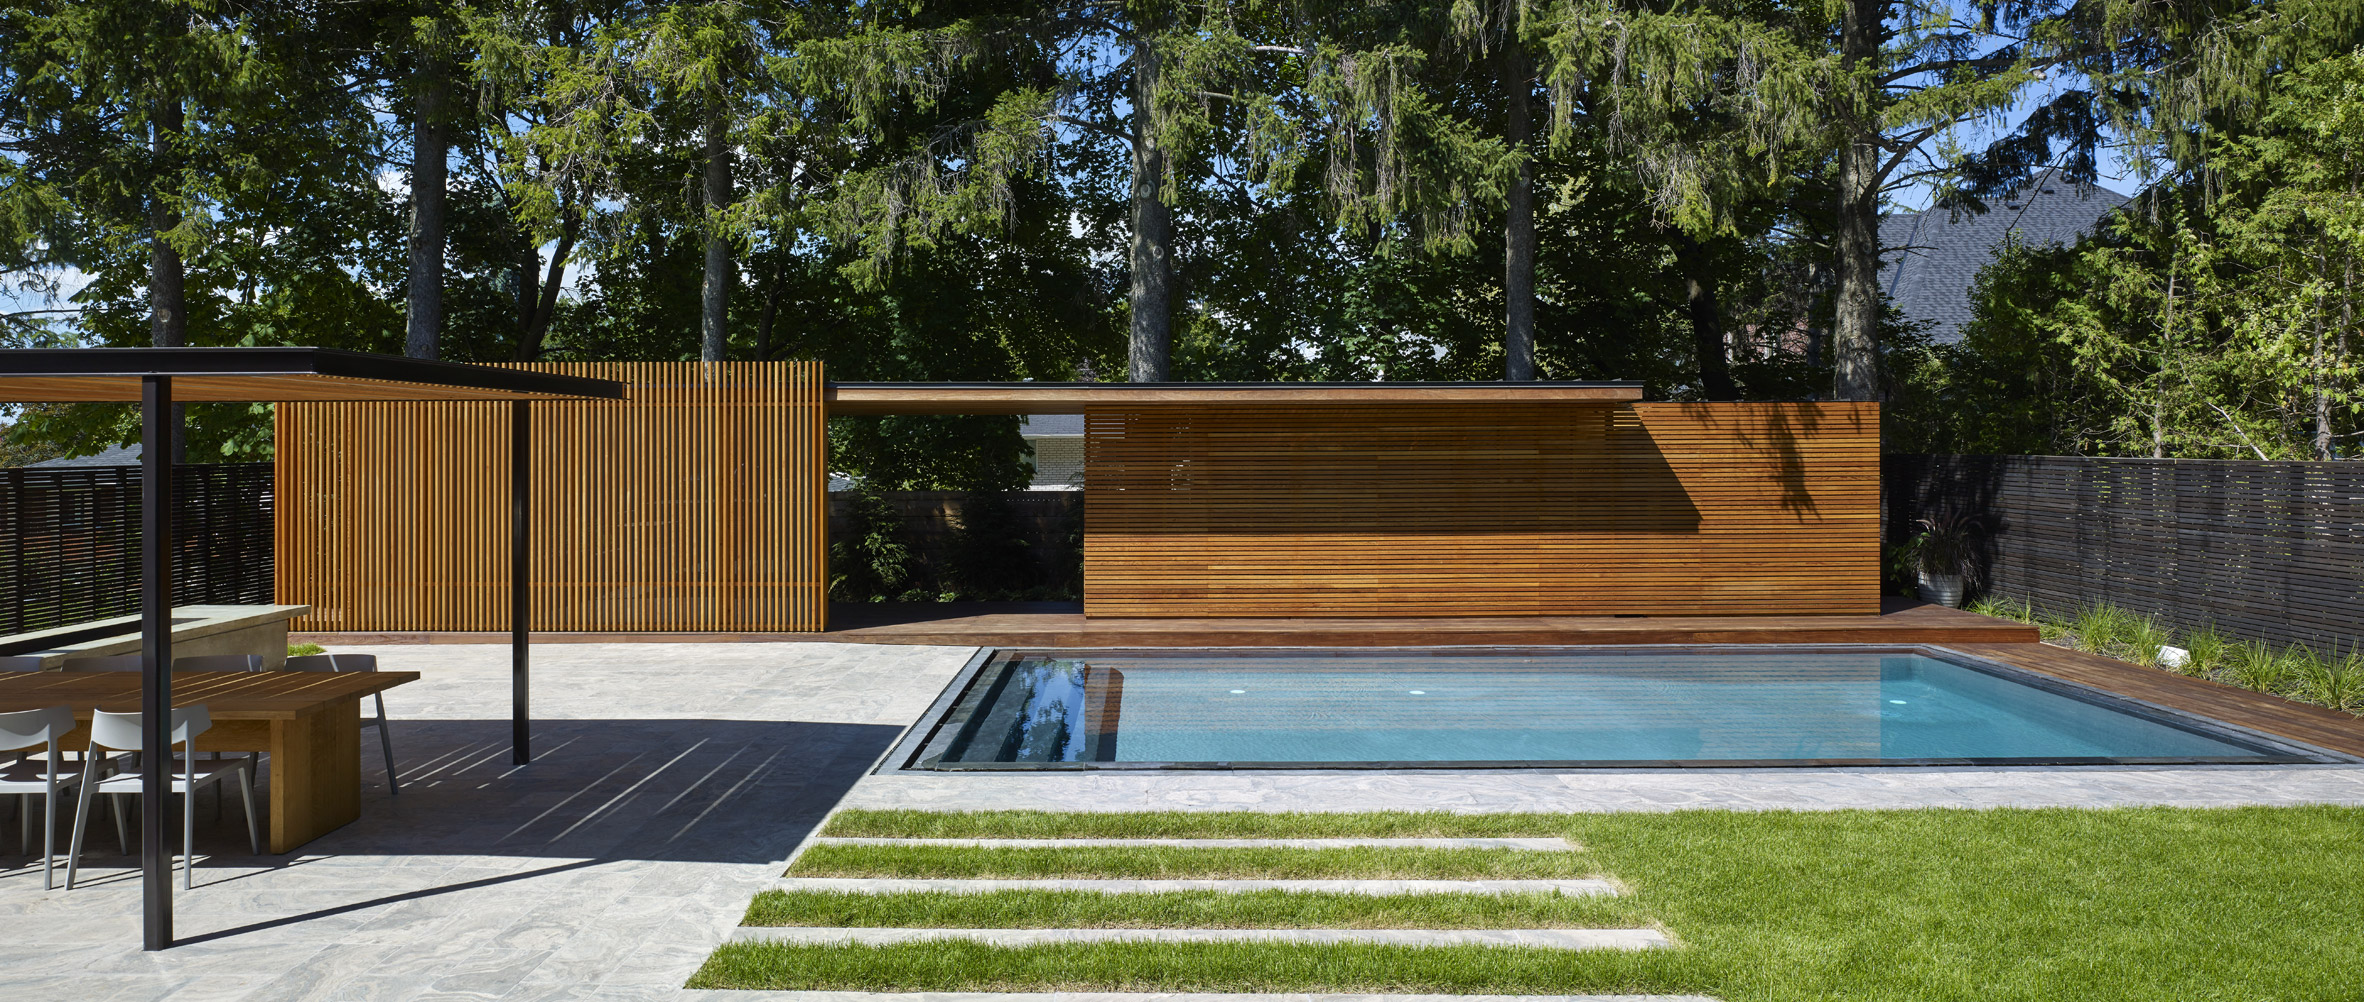 Wooden pool house by Amantea Architects provides privacy for Canadian family